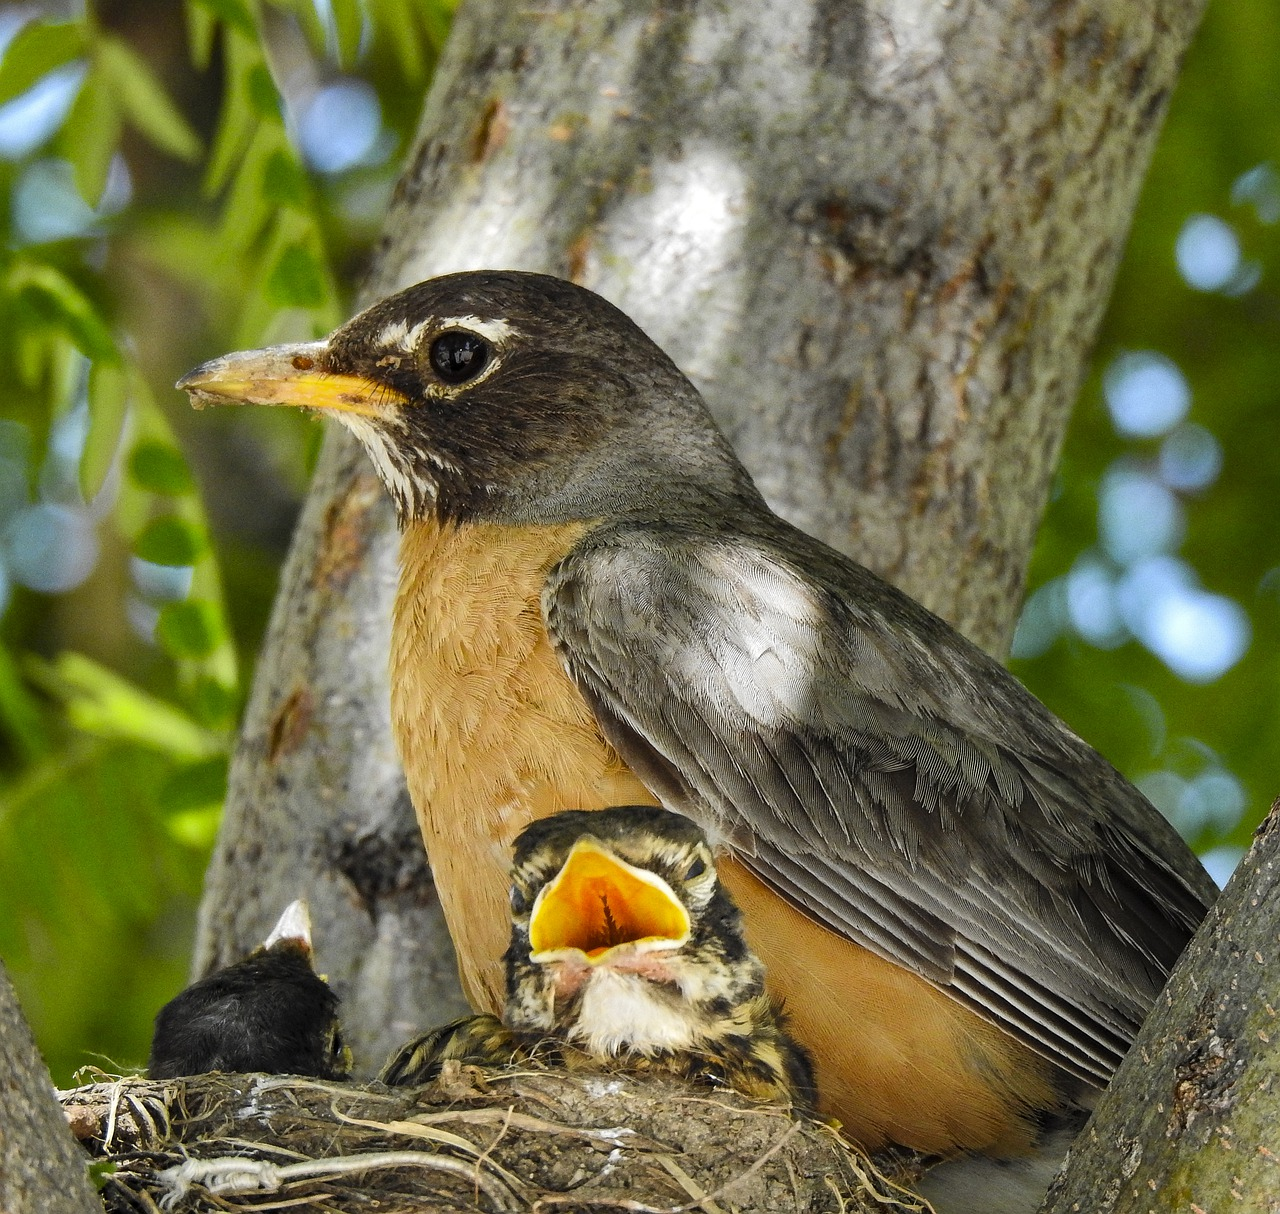 Baby robins eat 14 feet of earthworms every day.